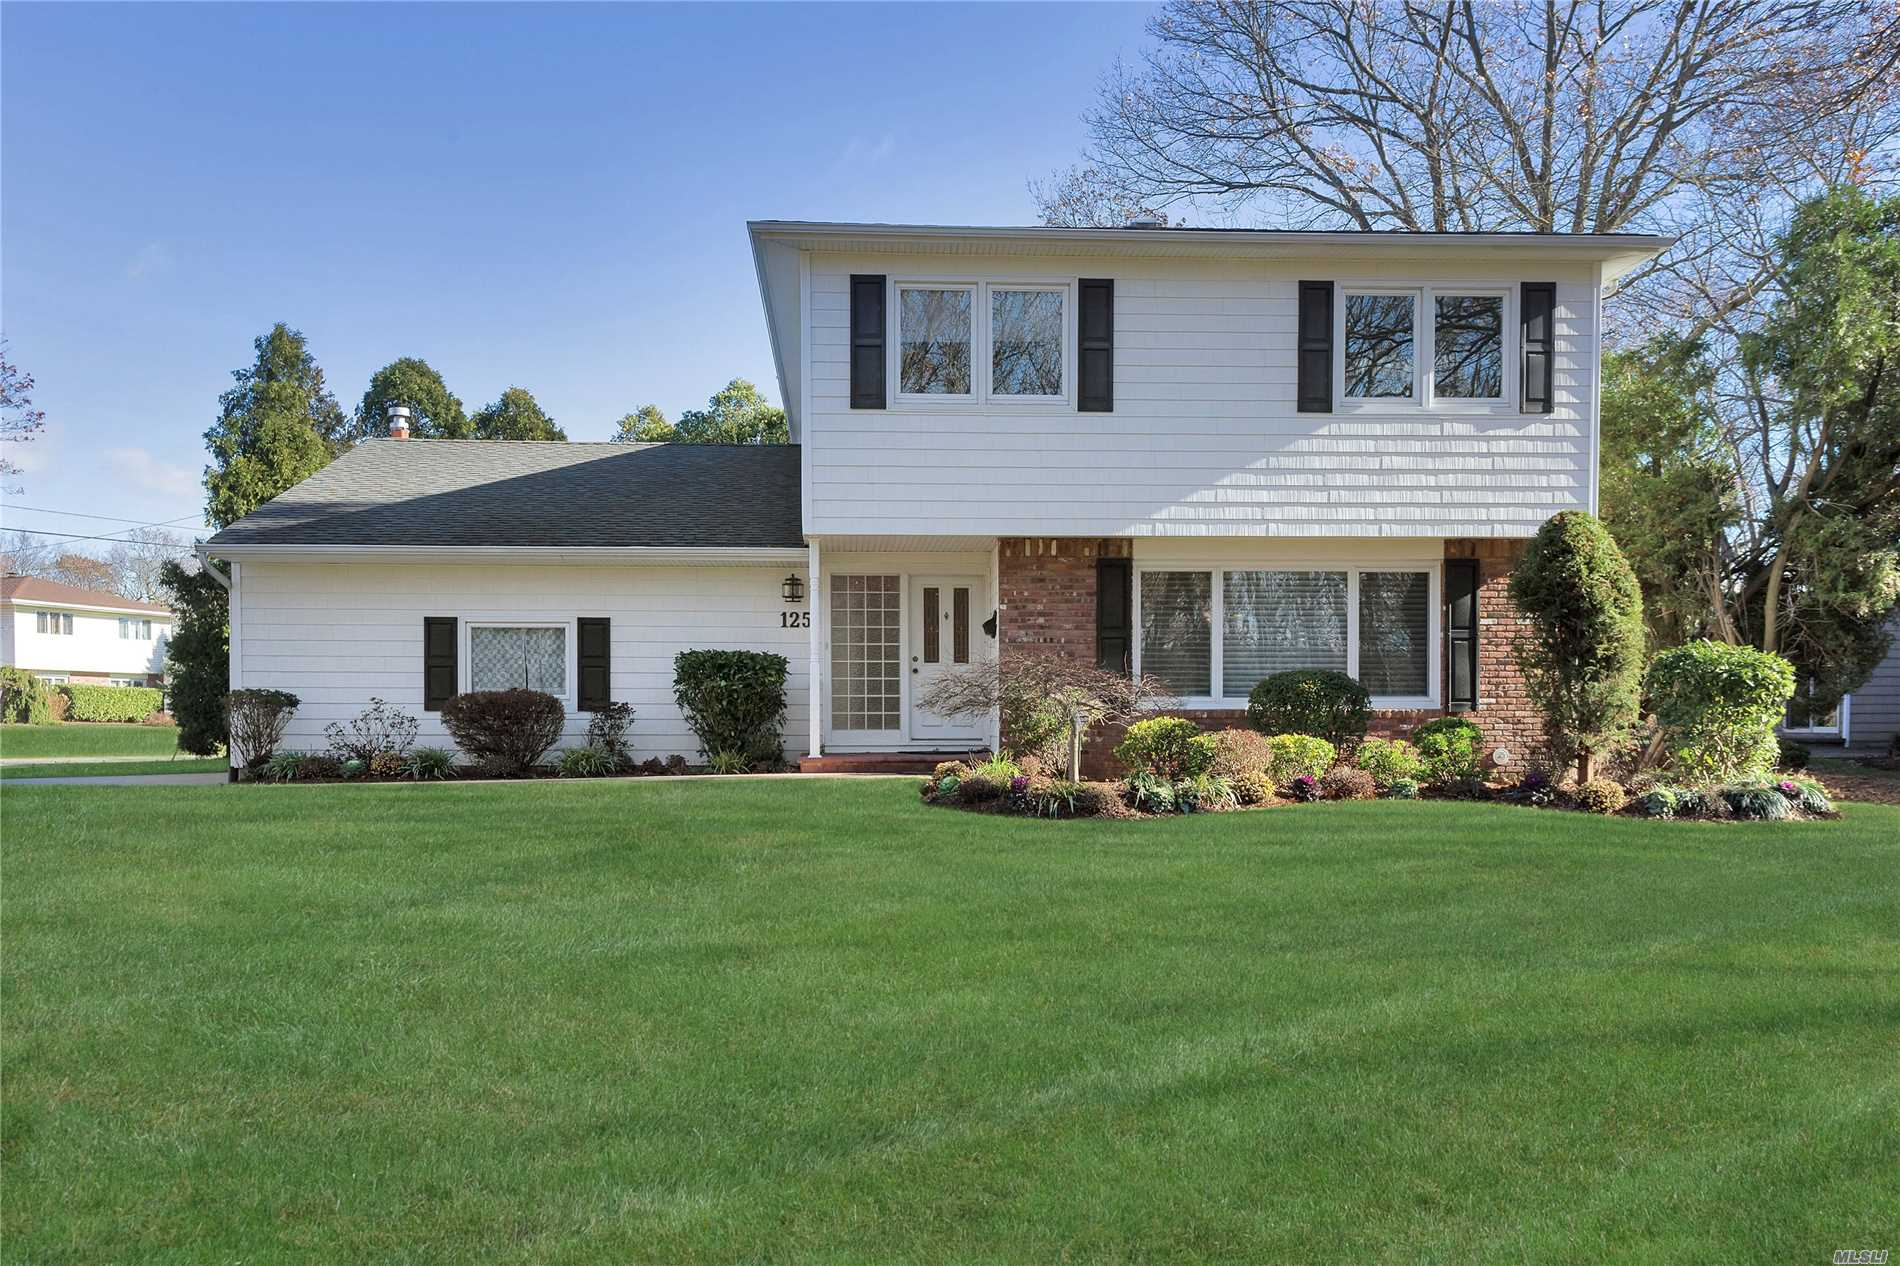 *Unmatched Low Taxes* Immaculate, Tastefully Redone & Superbly Maintained Center Hall Colonial In Desired Damon Park, Parkway Elem., All New Windows, New Ss Appliances/Granite/New Backsplash & Redone Kitch.Cabs. Updated Bths., Ugs, 200 Amps, Alarm, Gas Heat, Cac, Newer Roof/Siding/Brick/Patio/Driveway, Beautiful Landscaping, Gas Fireplace/Built-Ins, New Basement, New Hot Wtr.Htr., Redone Garage With Huge Attic Storage